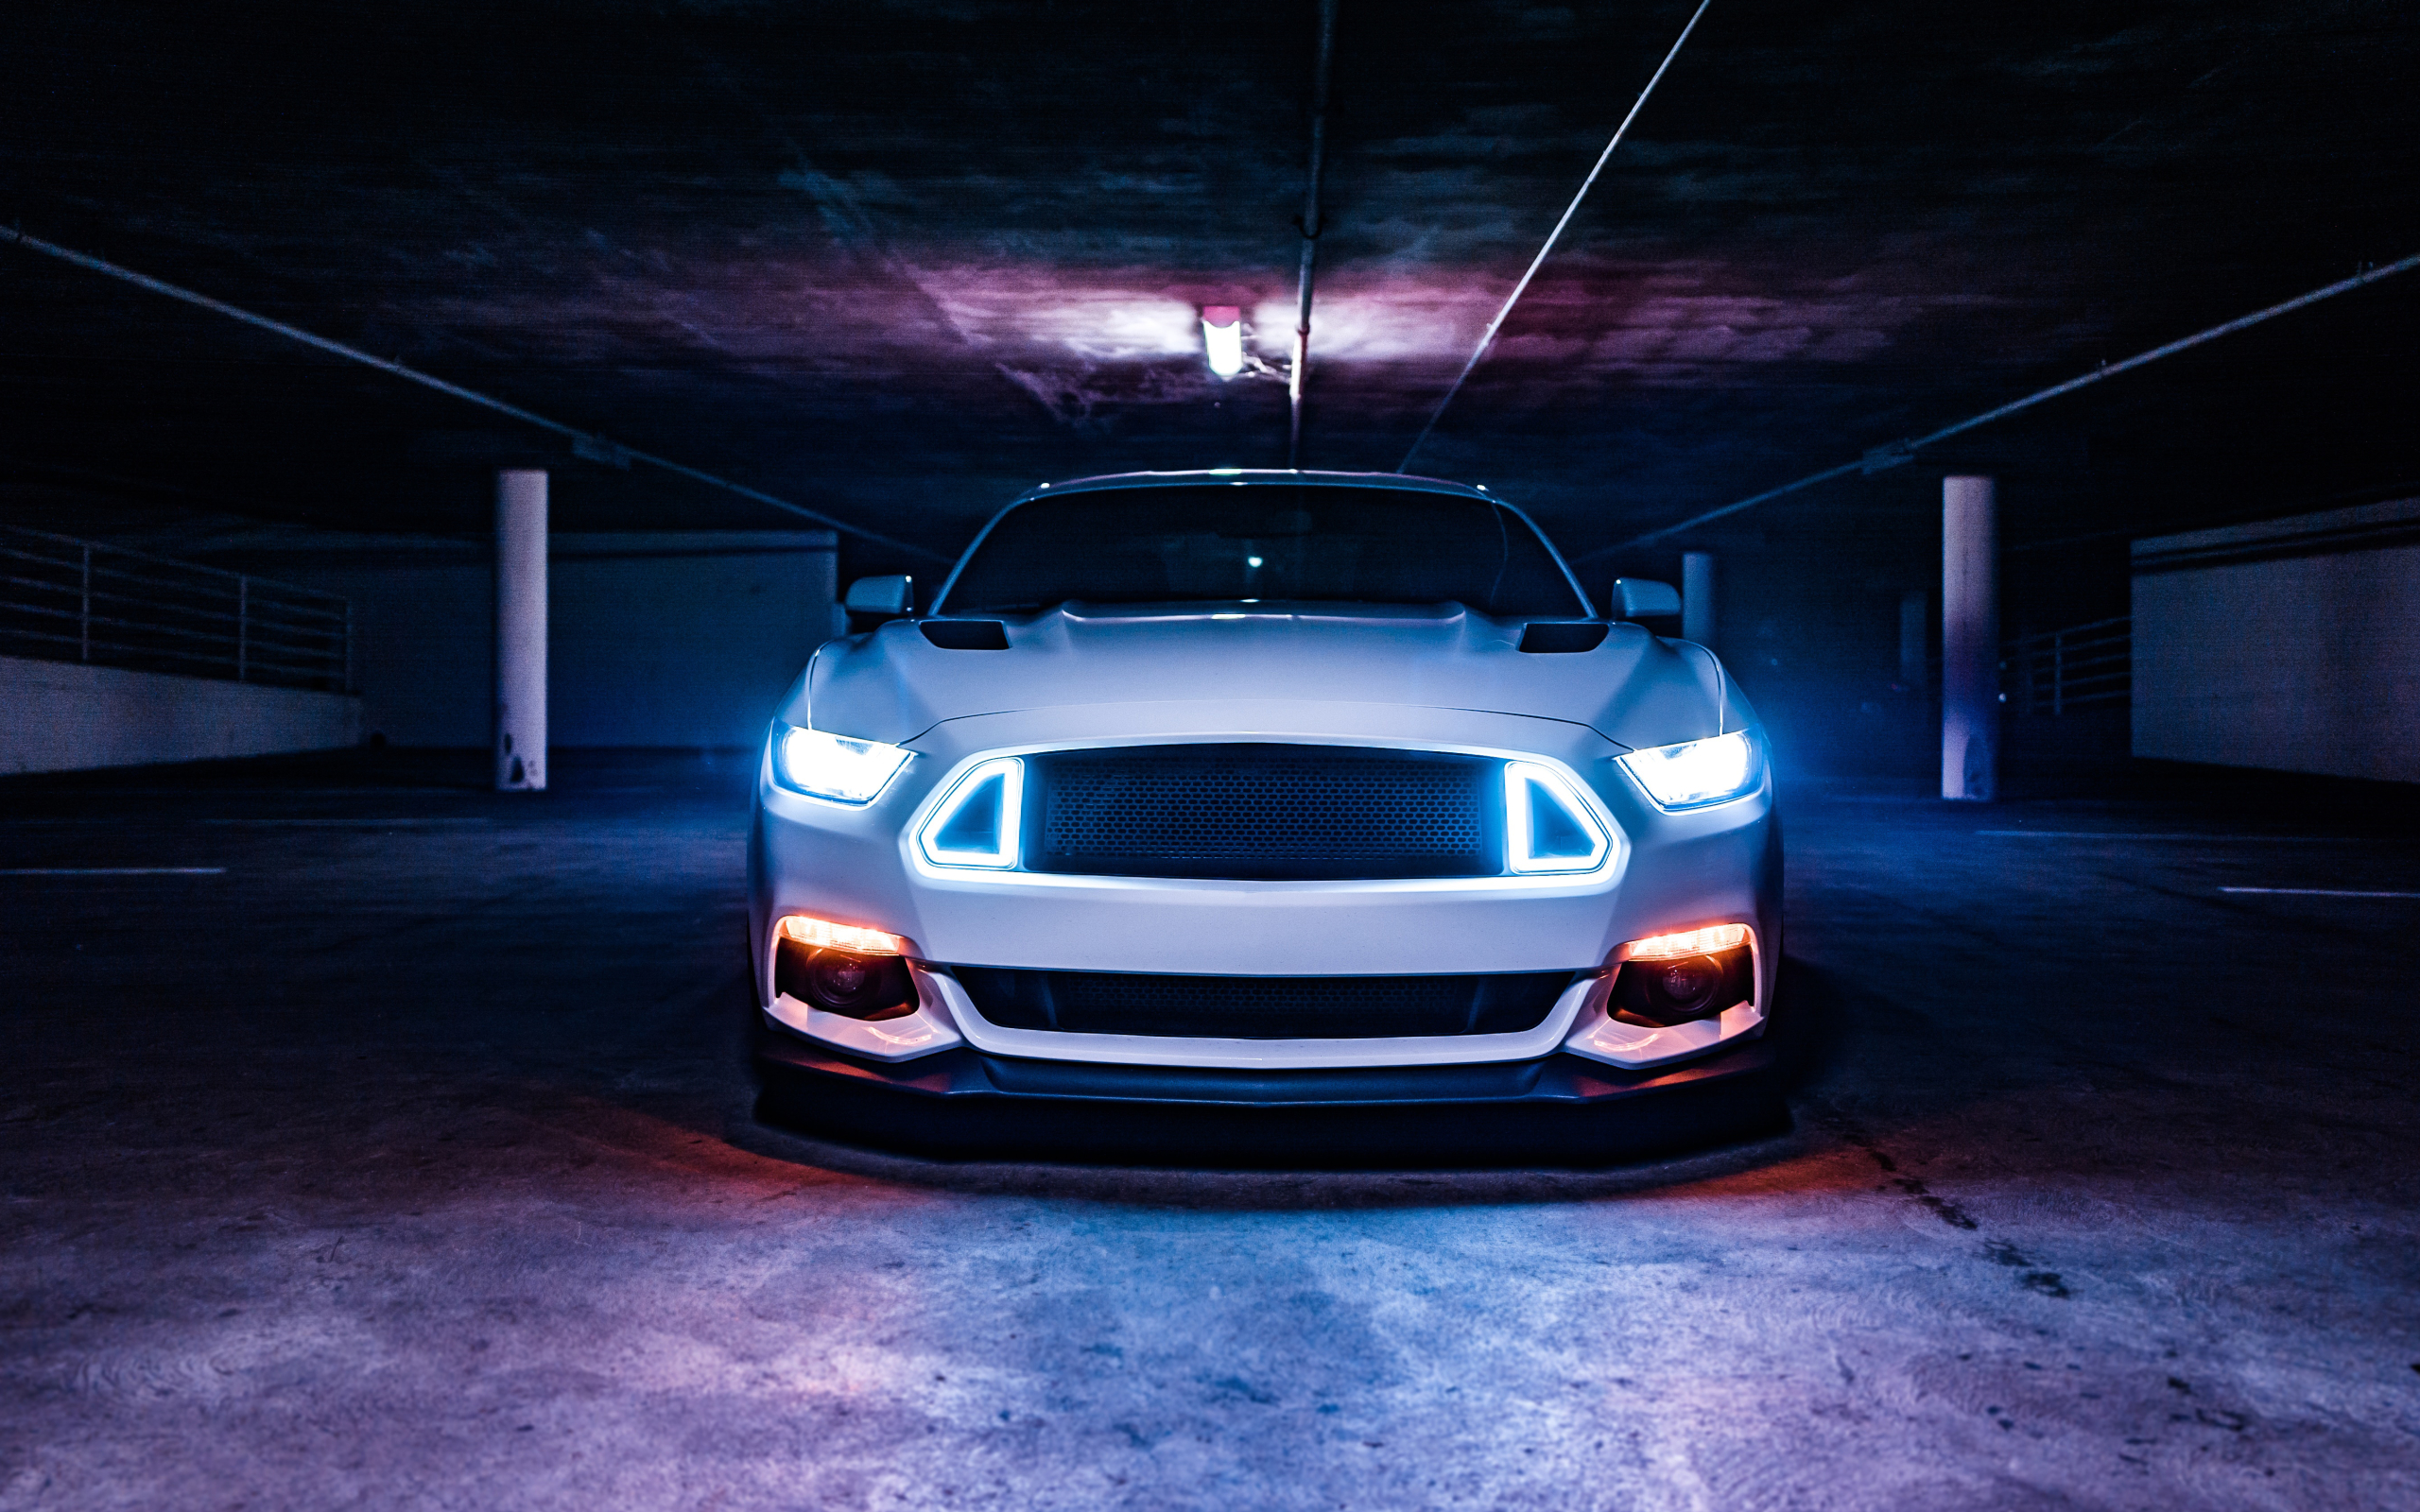 Wallpaper Of Car Ford Mustang Musclecar White Neon